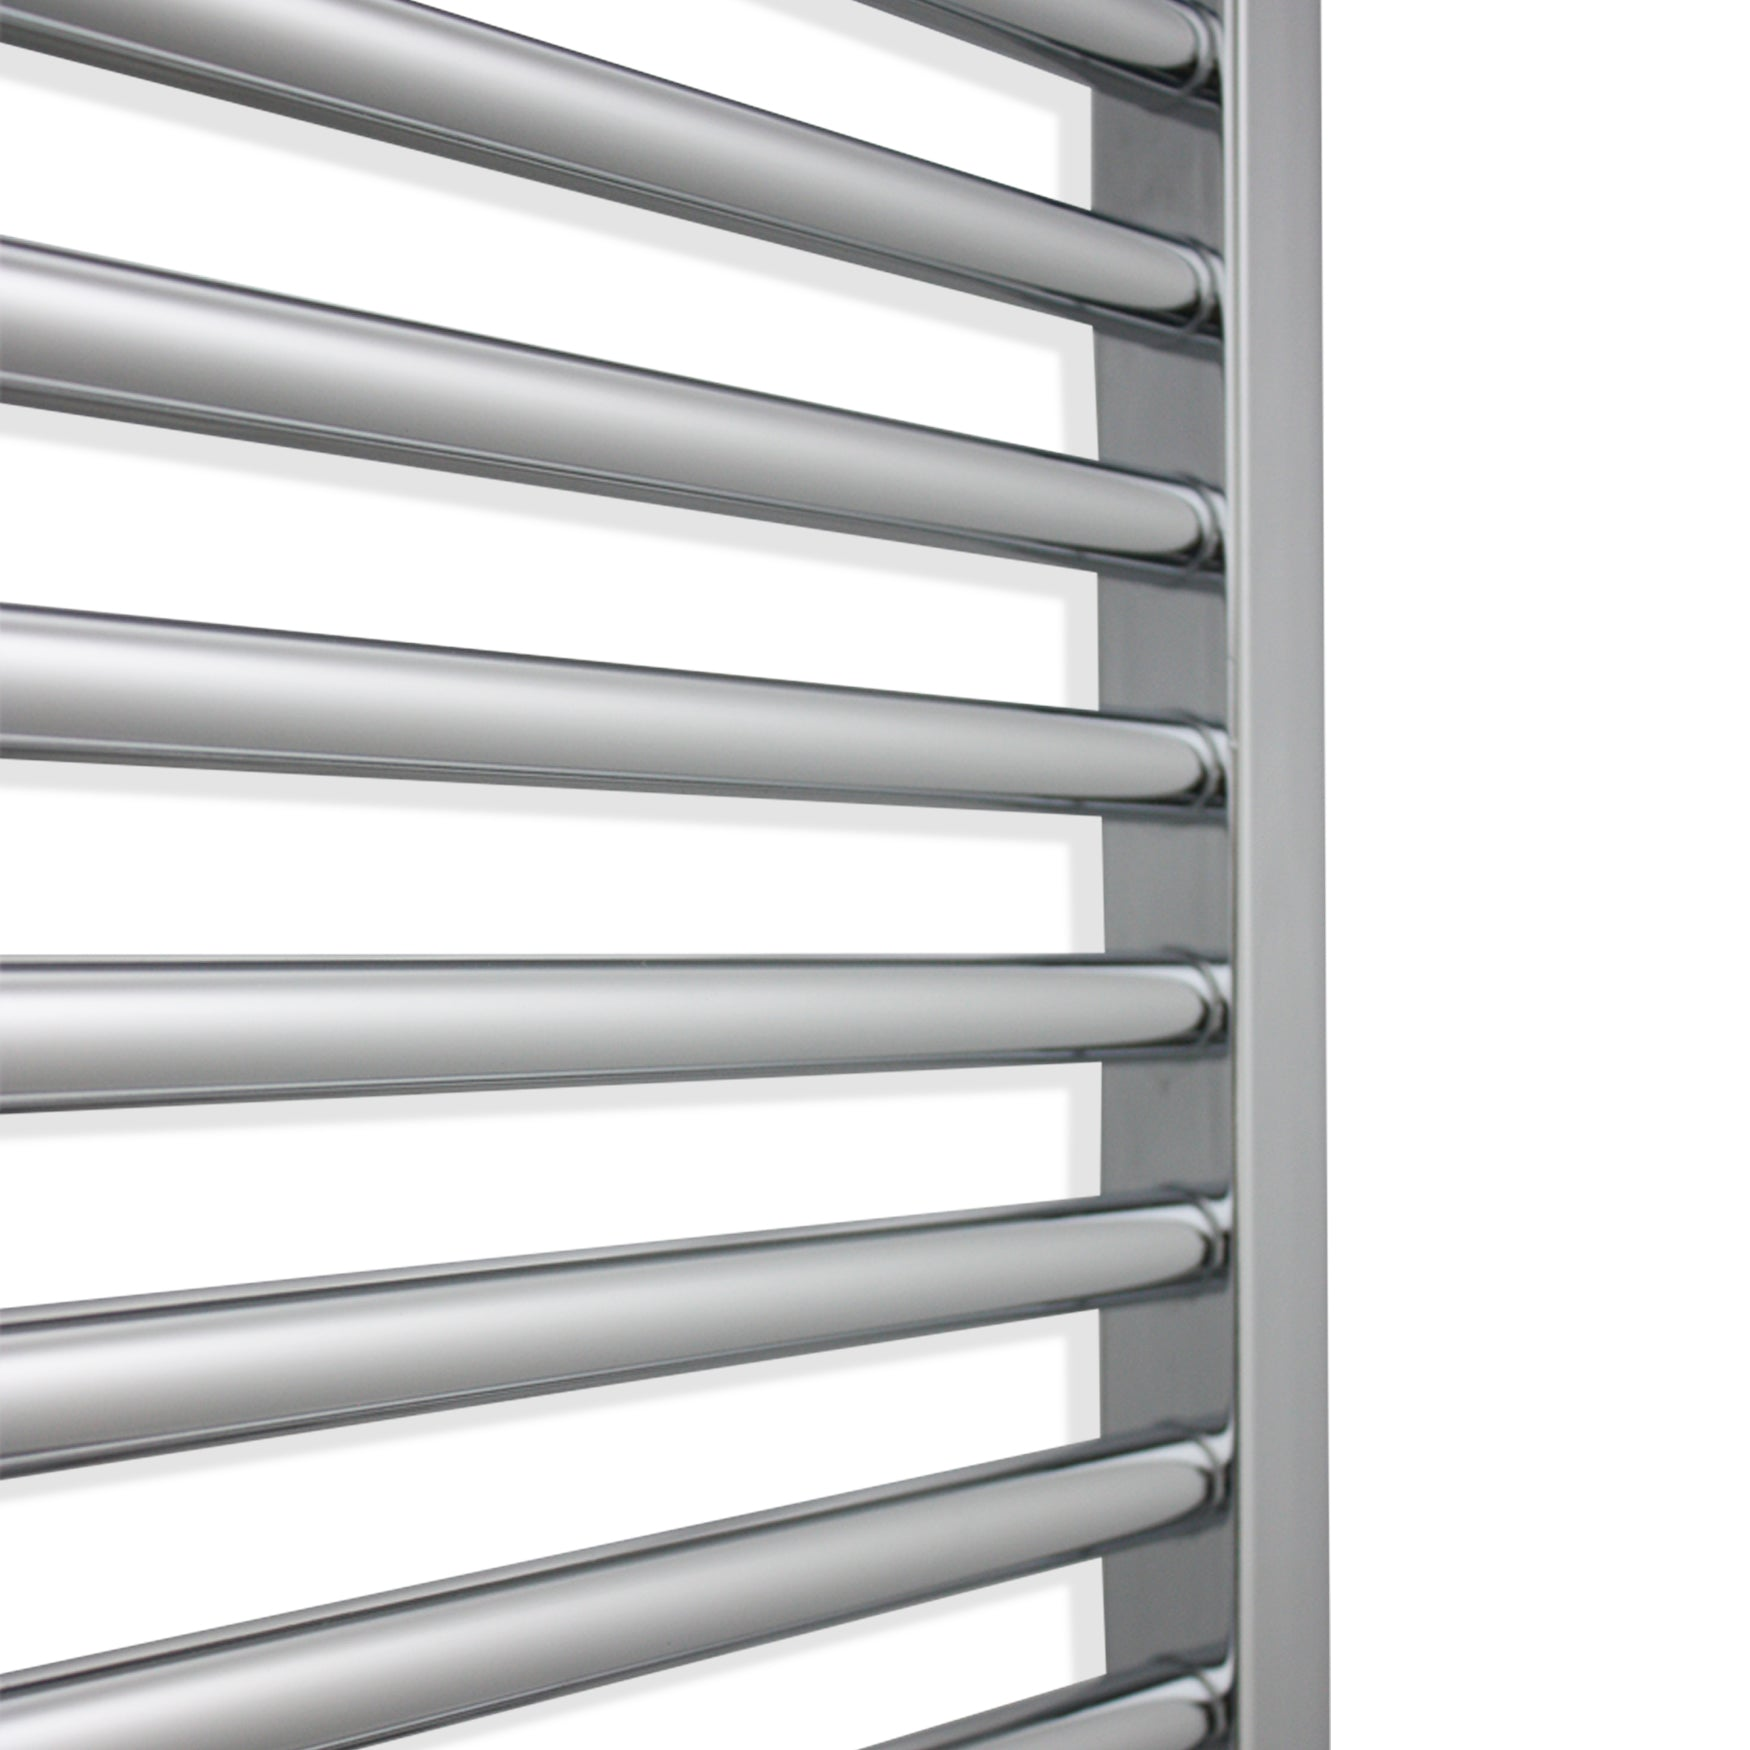 600mm Wide 400mm High Flat Or Curved Chrome Pre-Filled Electric Heated Towel Rail Radiator HTR